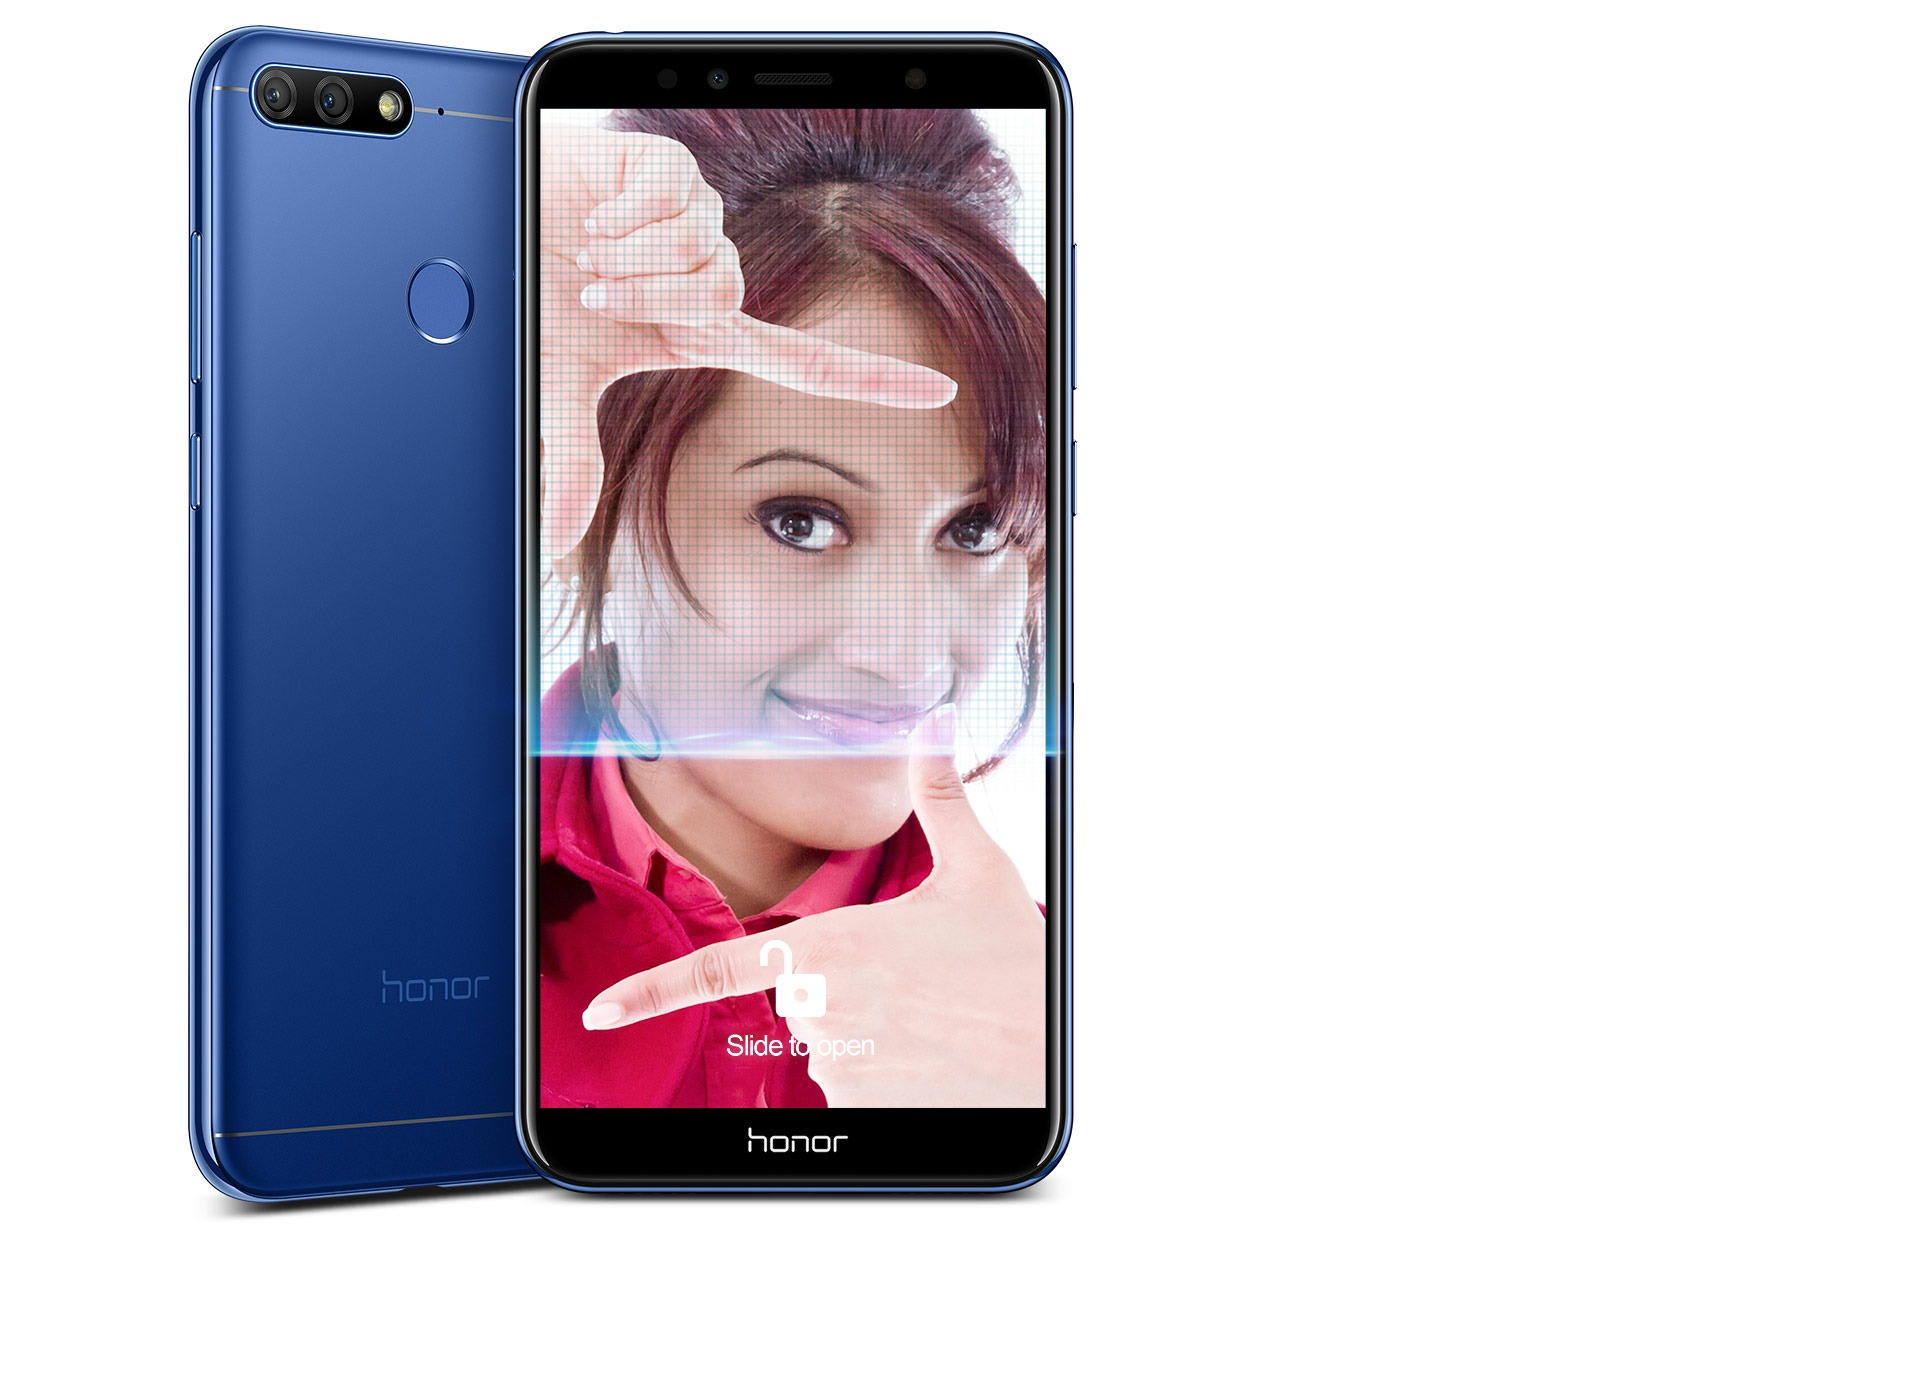 Honor 7A & Honor 7C launched in India - Here's all you need to know 10